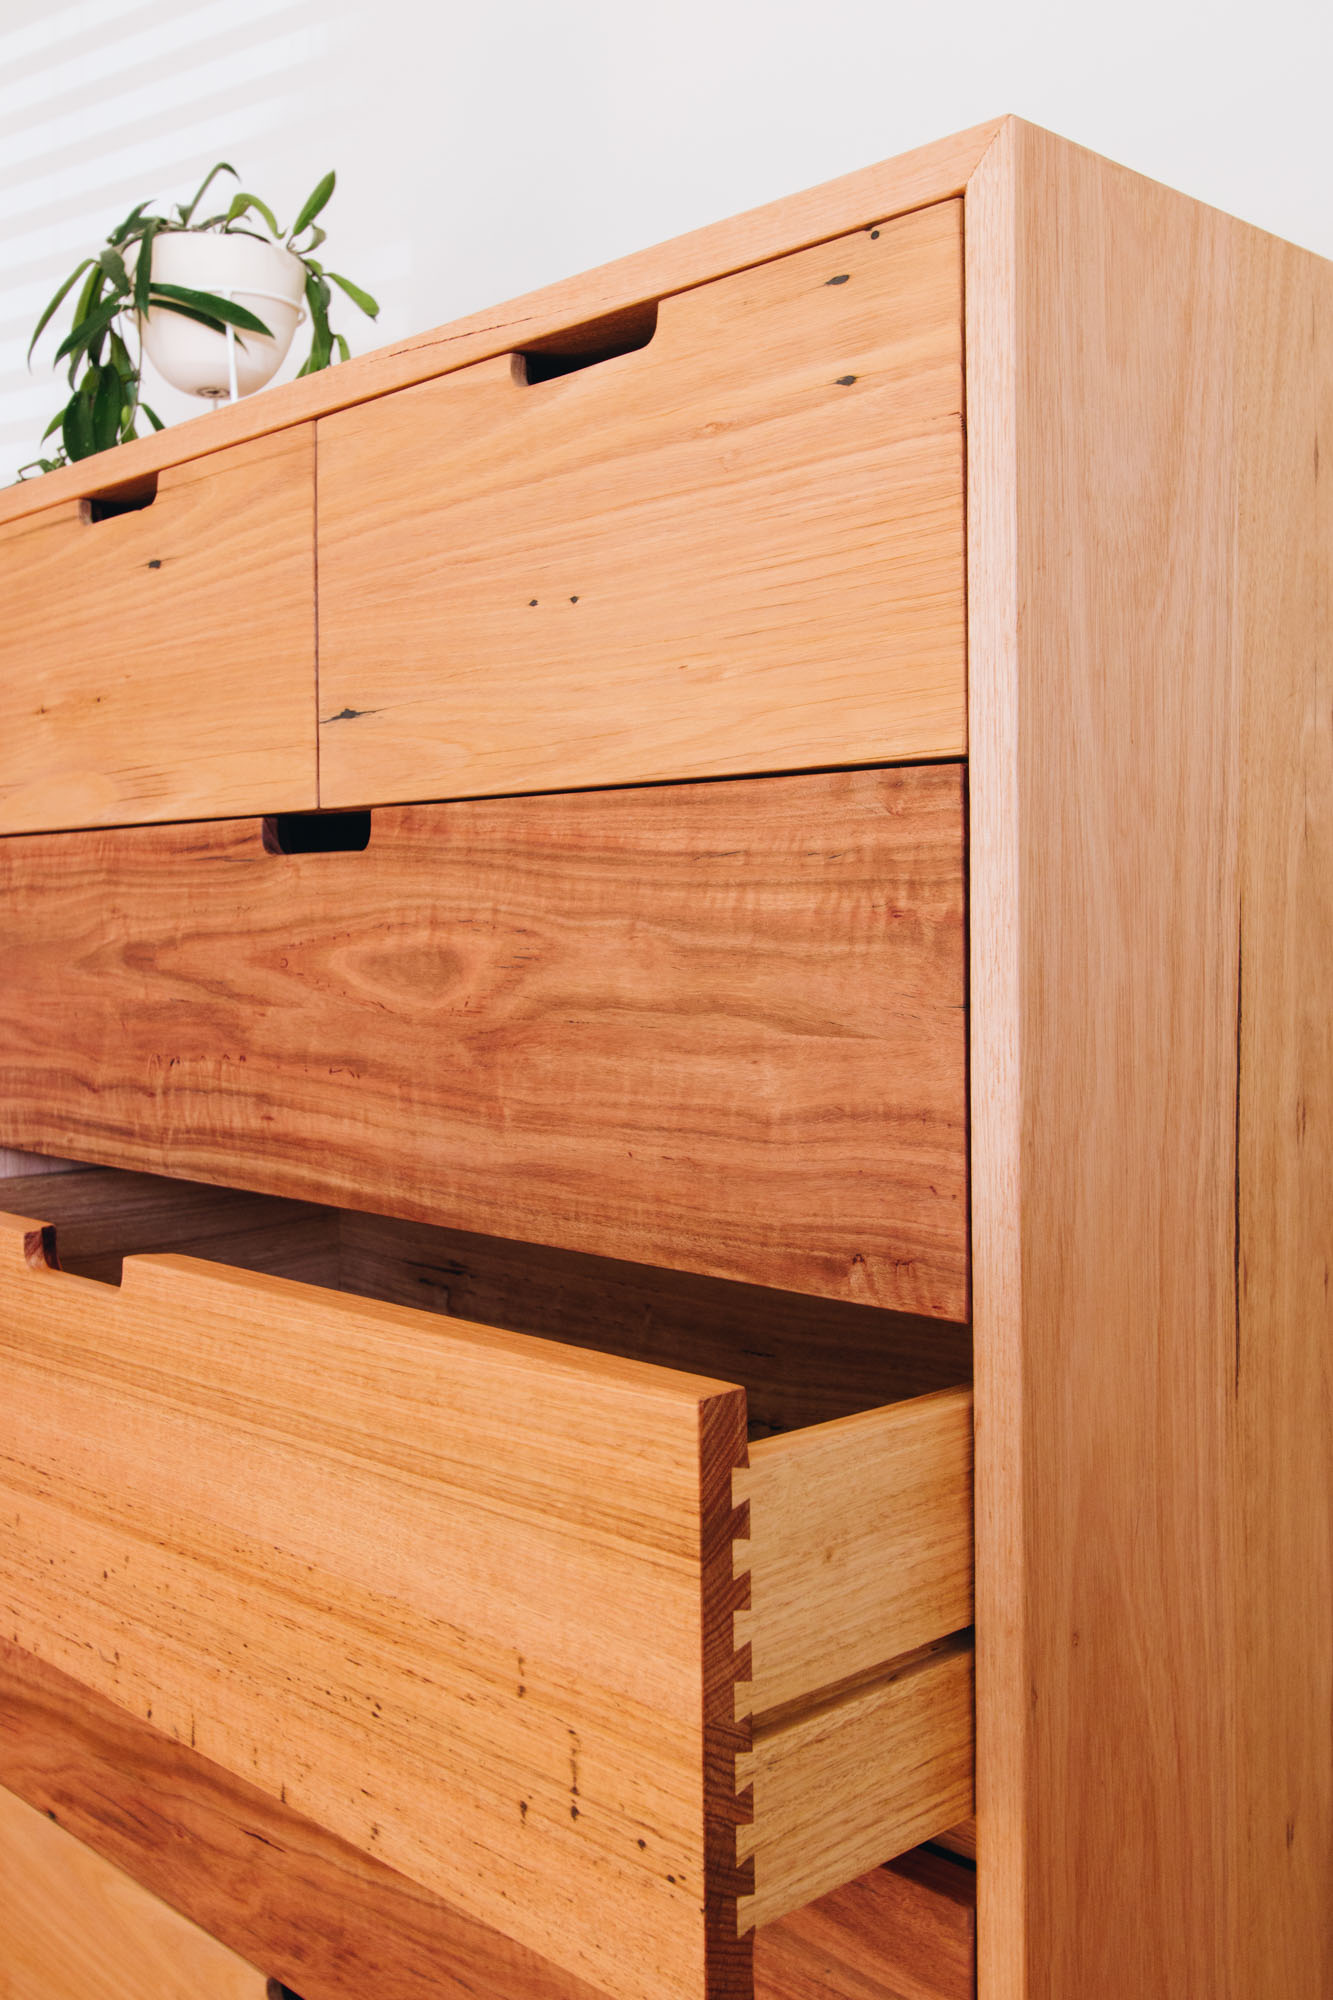 Al and Imo Handmade - Recycled Timber Tallboy - Melbourne - Australia-3.jpg